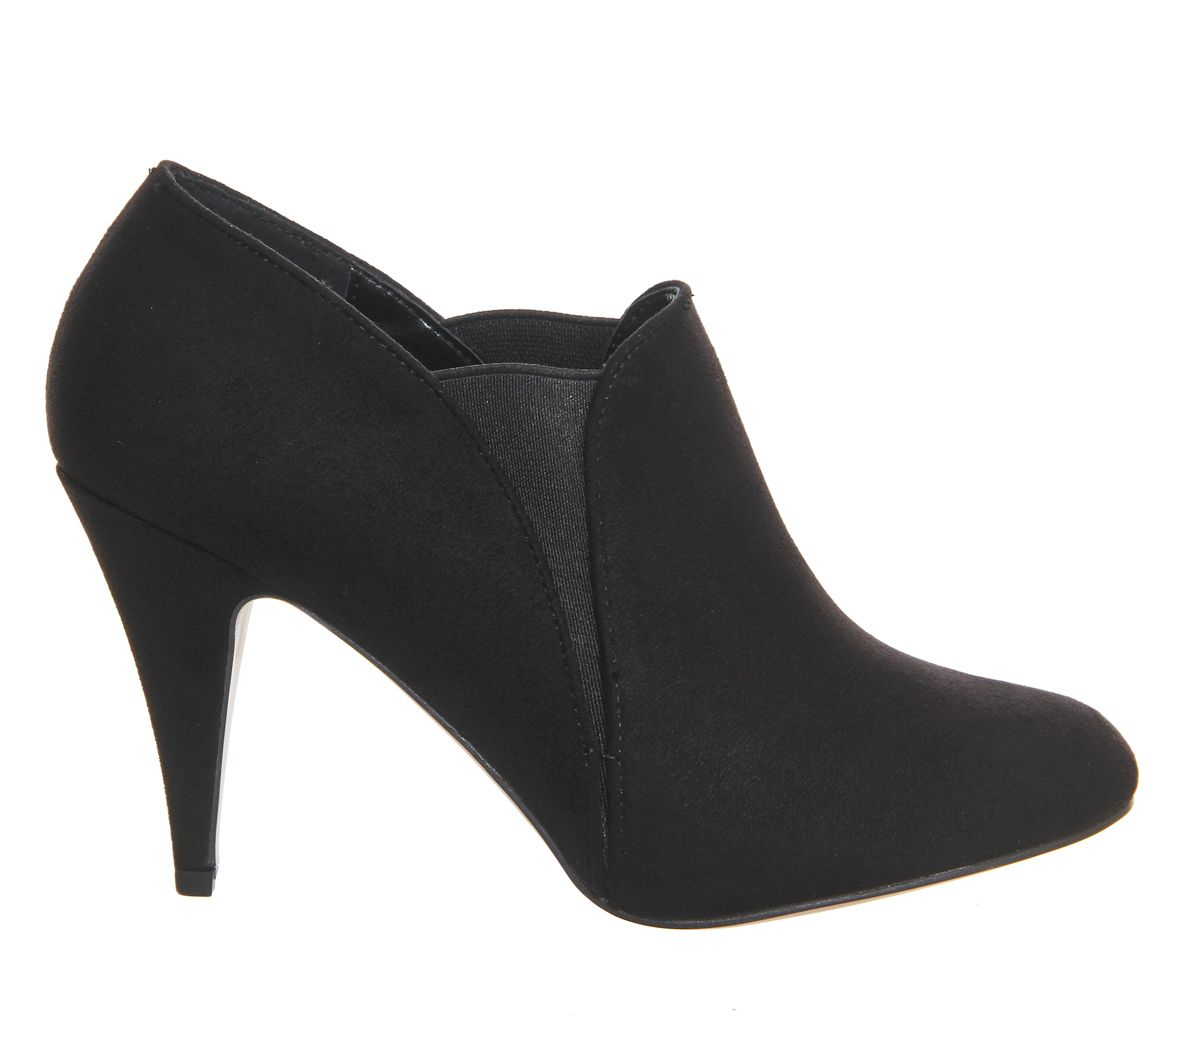 office quintessential shoe boots in black lyst